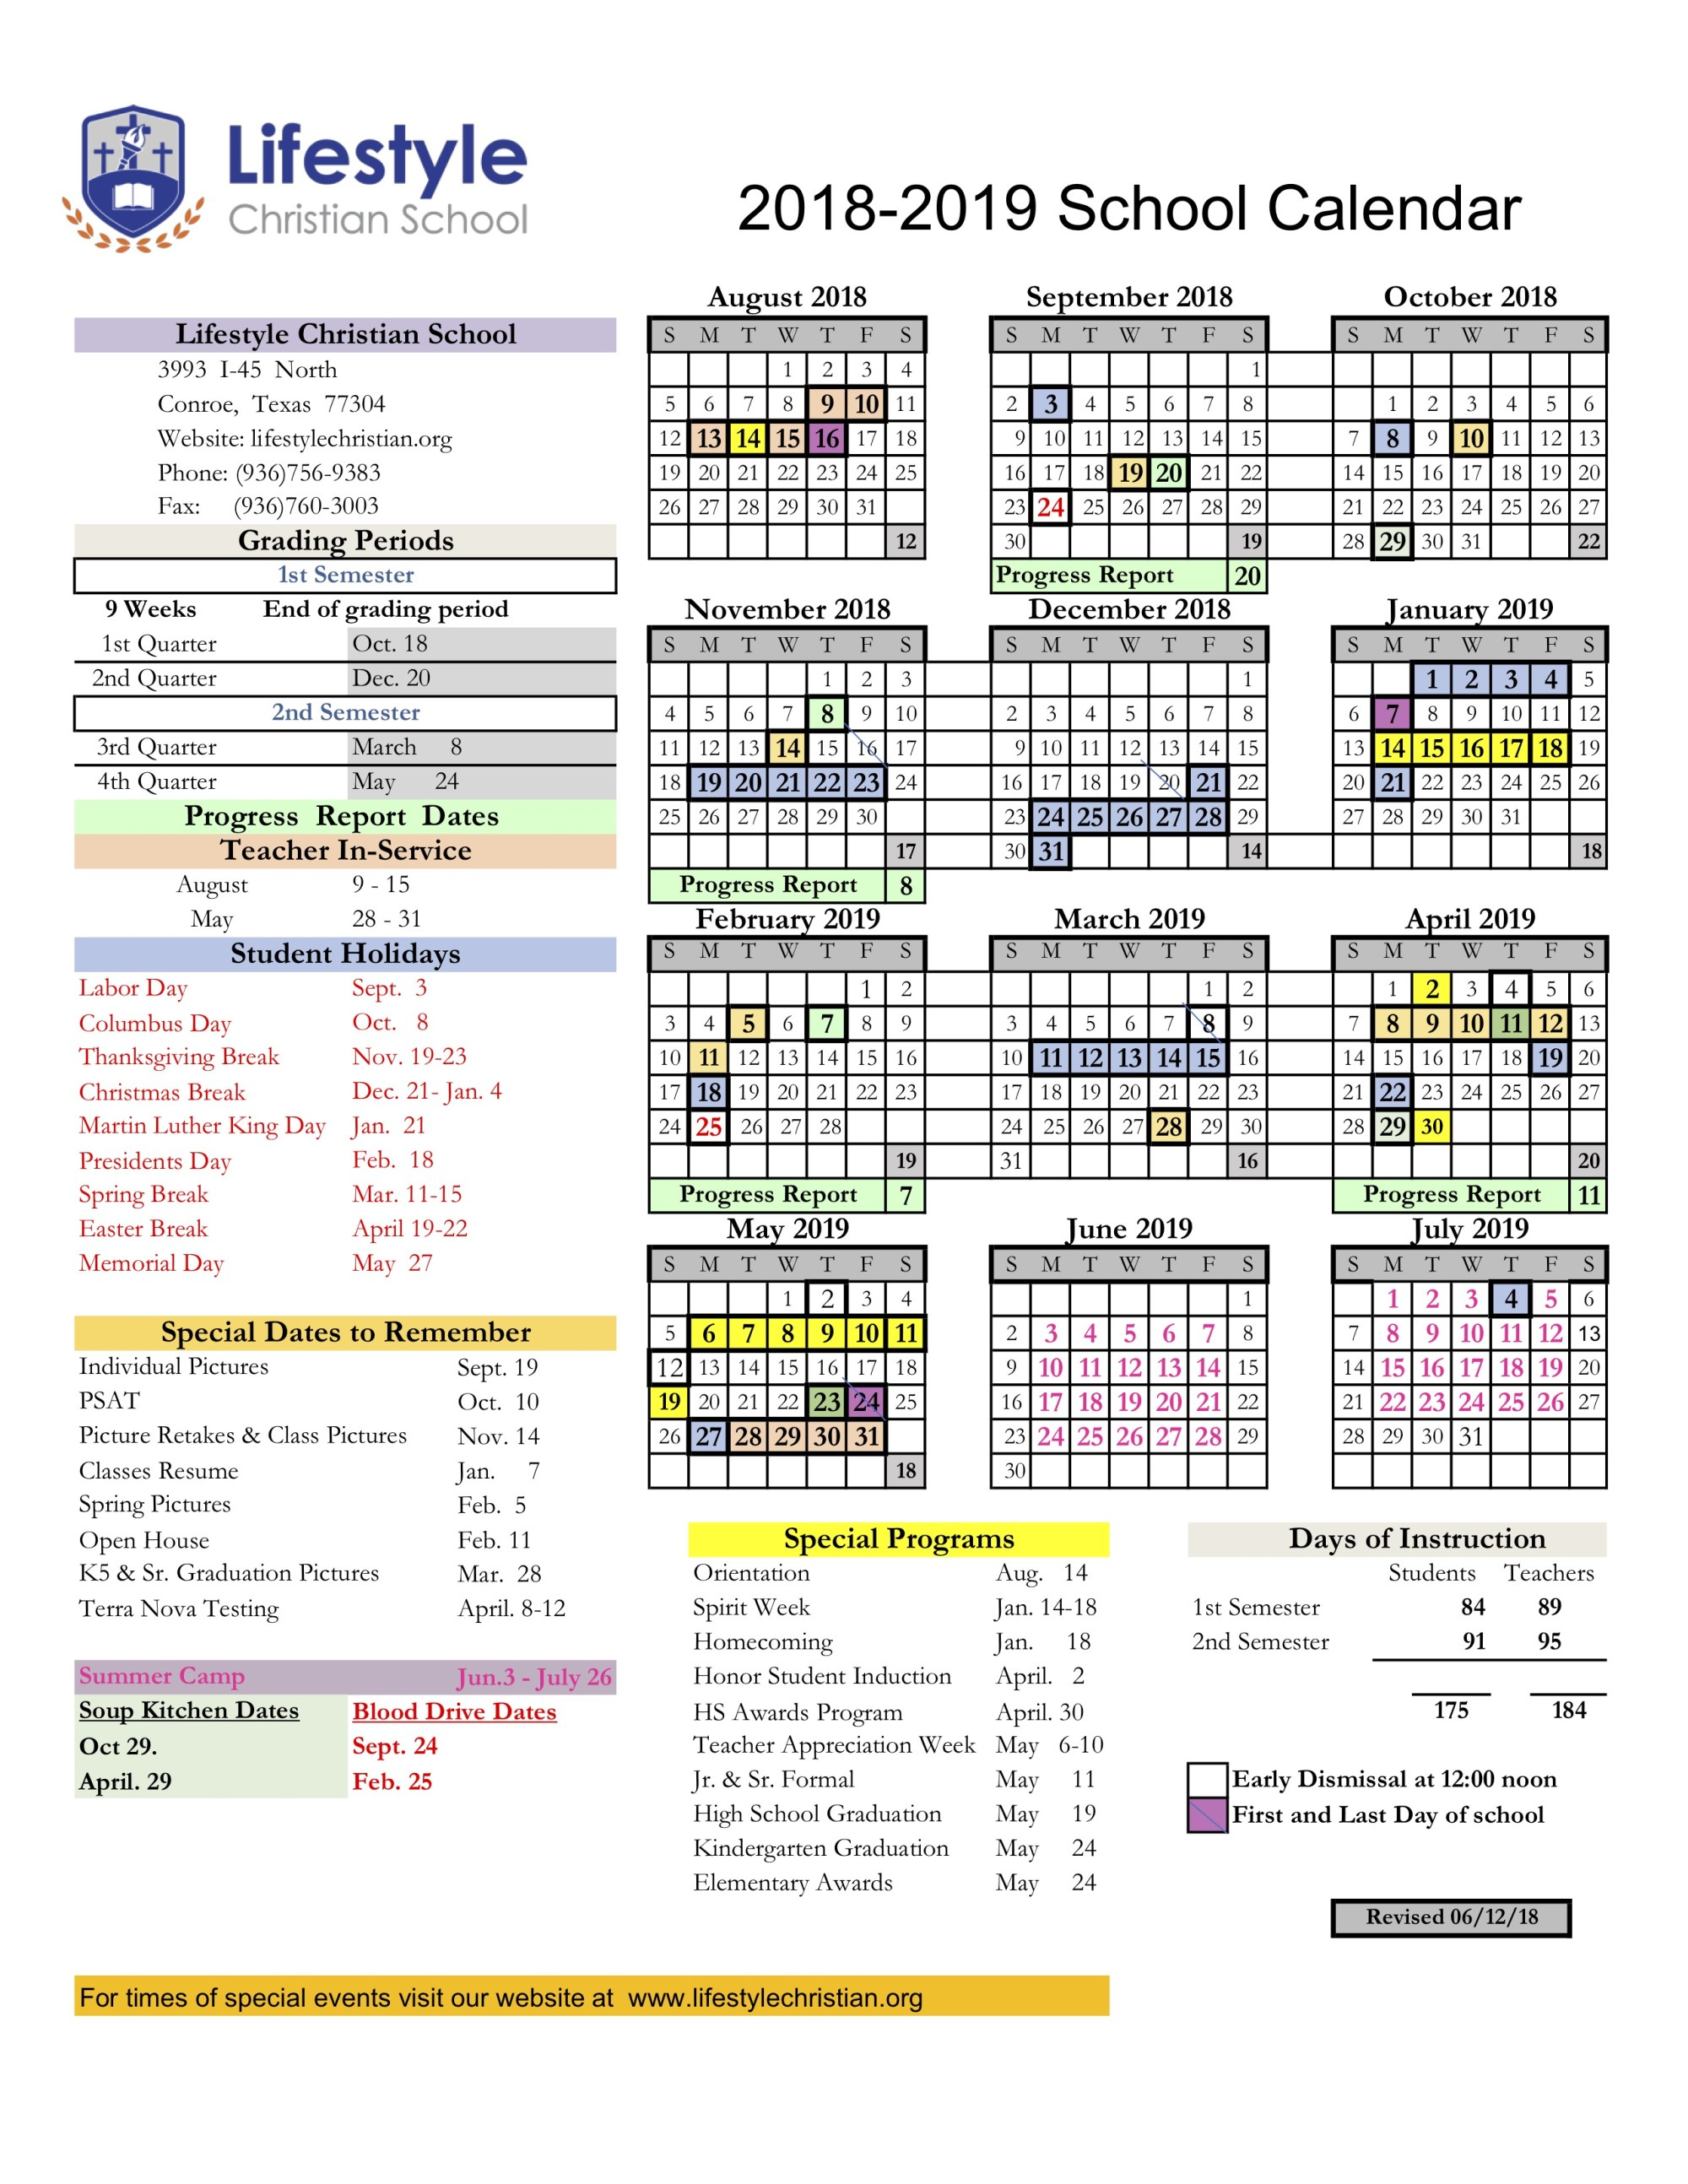 LCS Academic Calendar for 2018-19